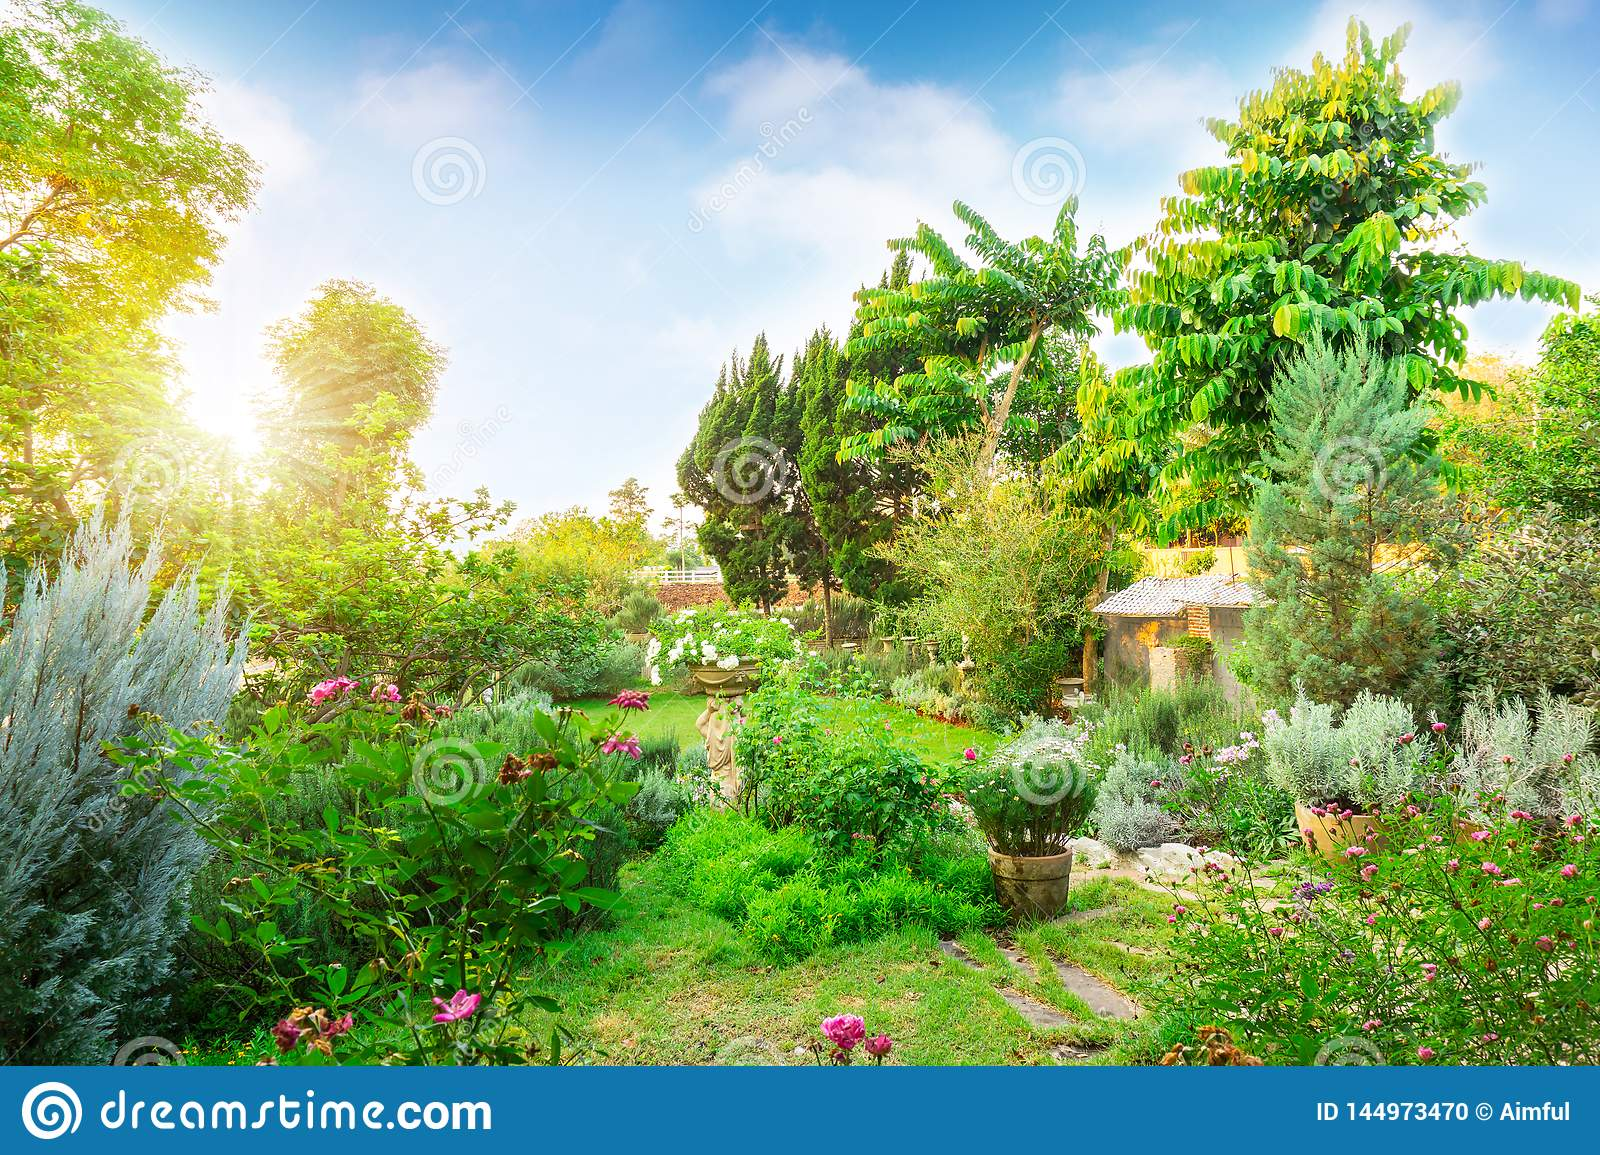 English cottage garden on green grass lawn backyard, infomal landscape decorate with roses, flower plant, rosemary herb, lavender